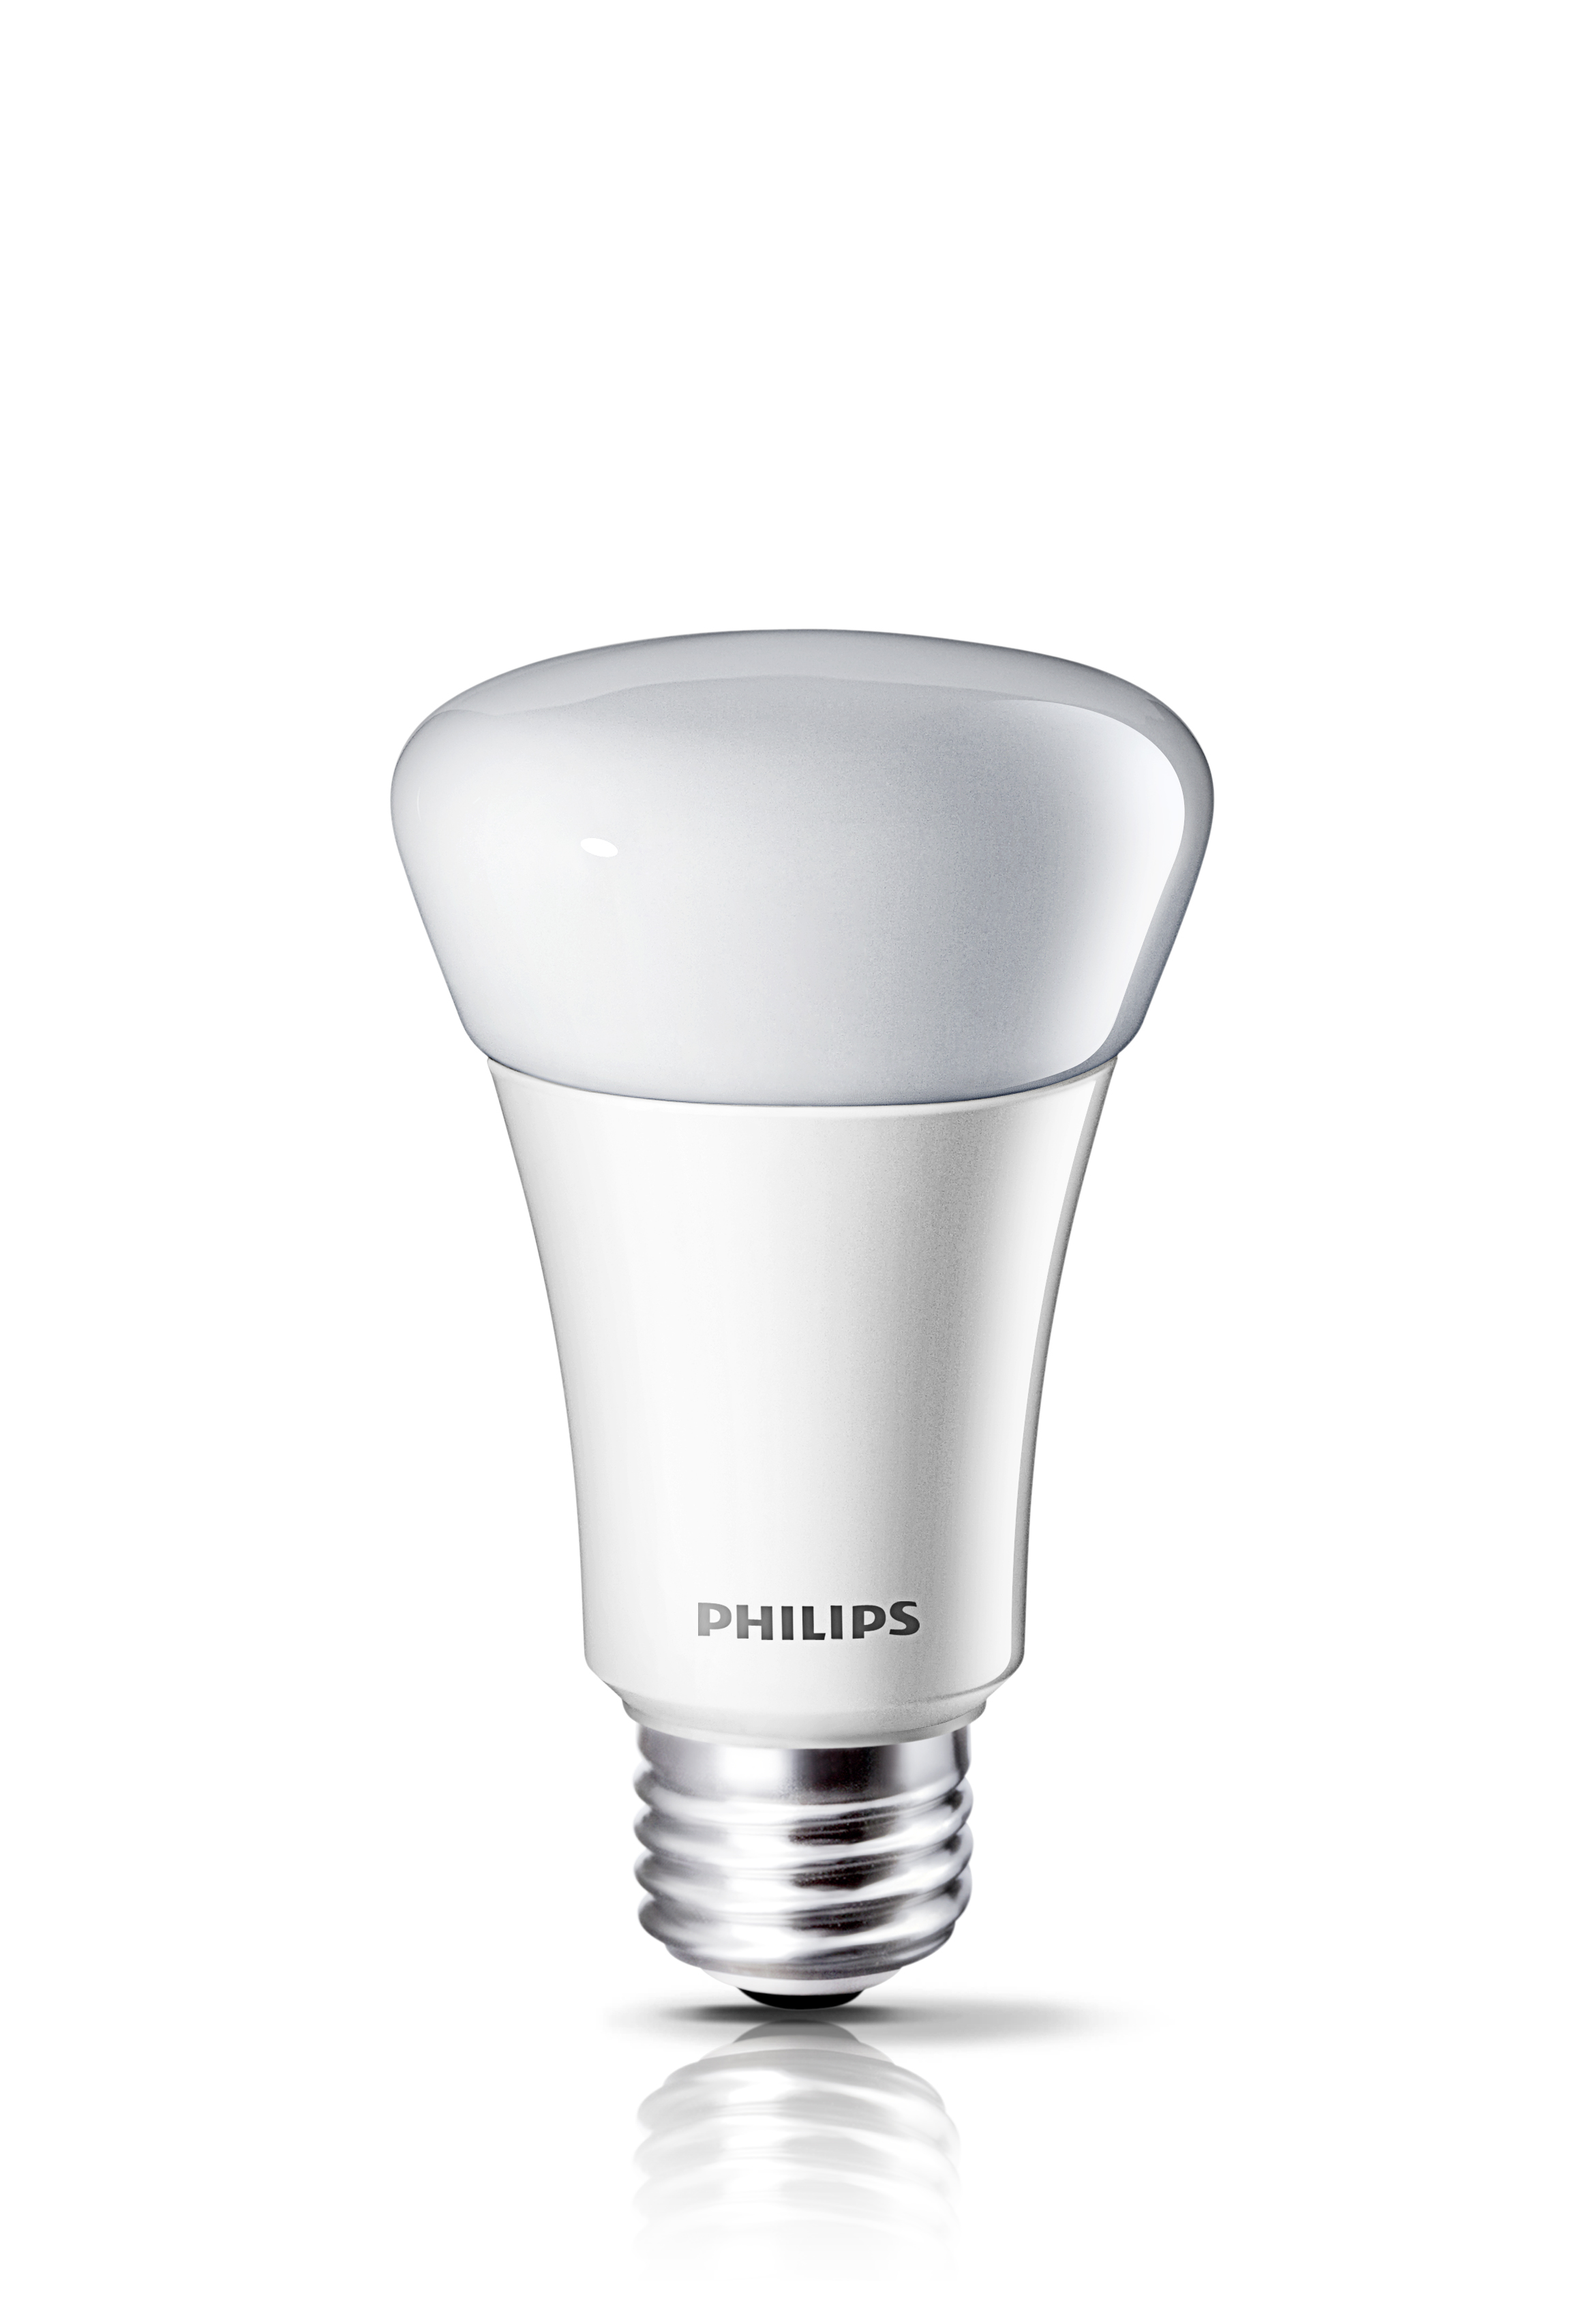 Philips 60 Watt Led Bulb Gets A Makeover